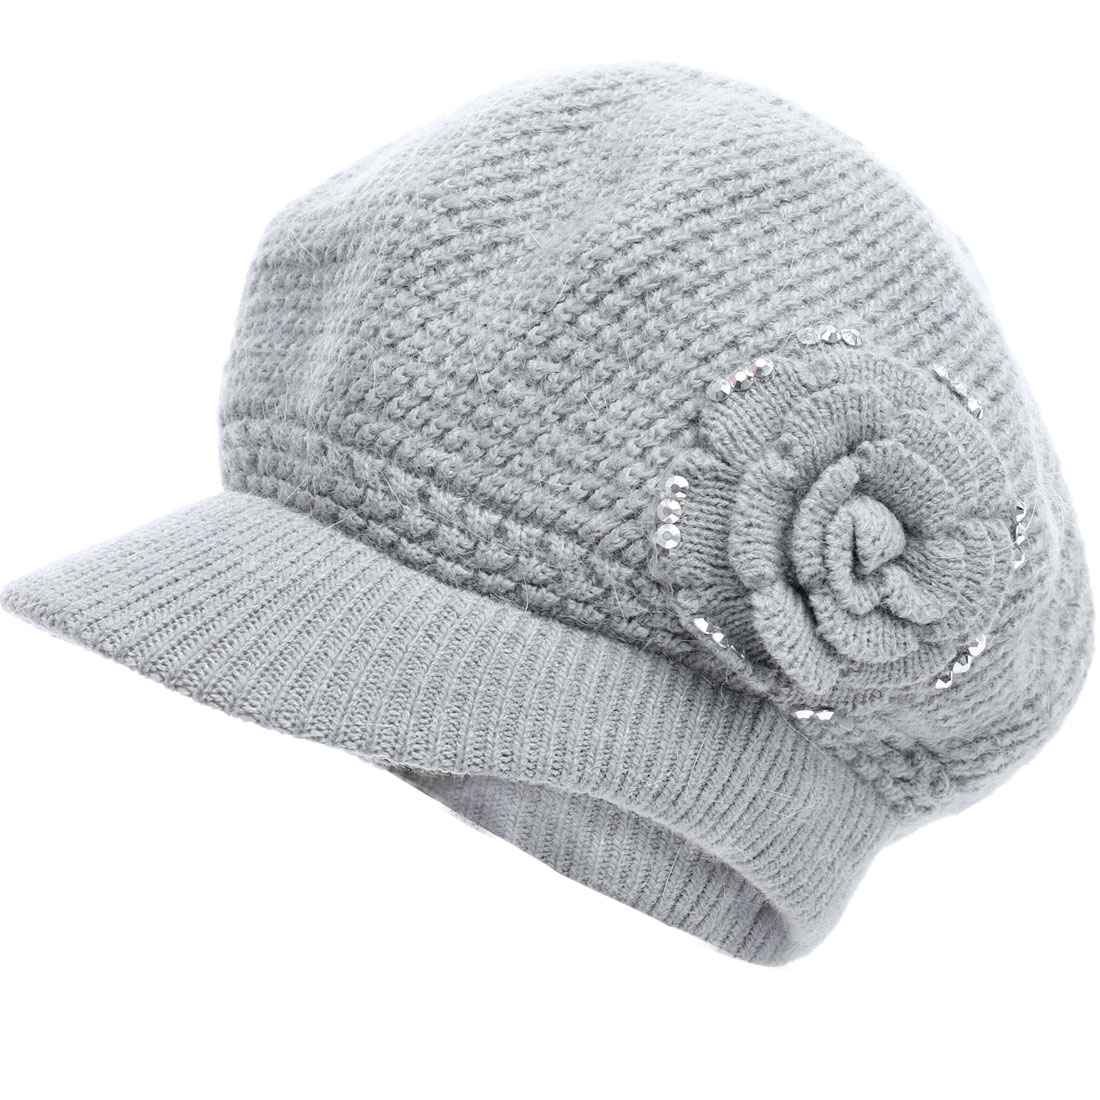 Women Studs Decor Stylish Brim Knitting Beret Hat Gray